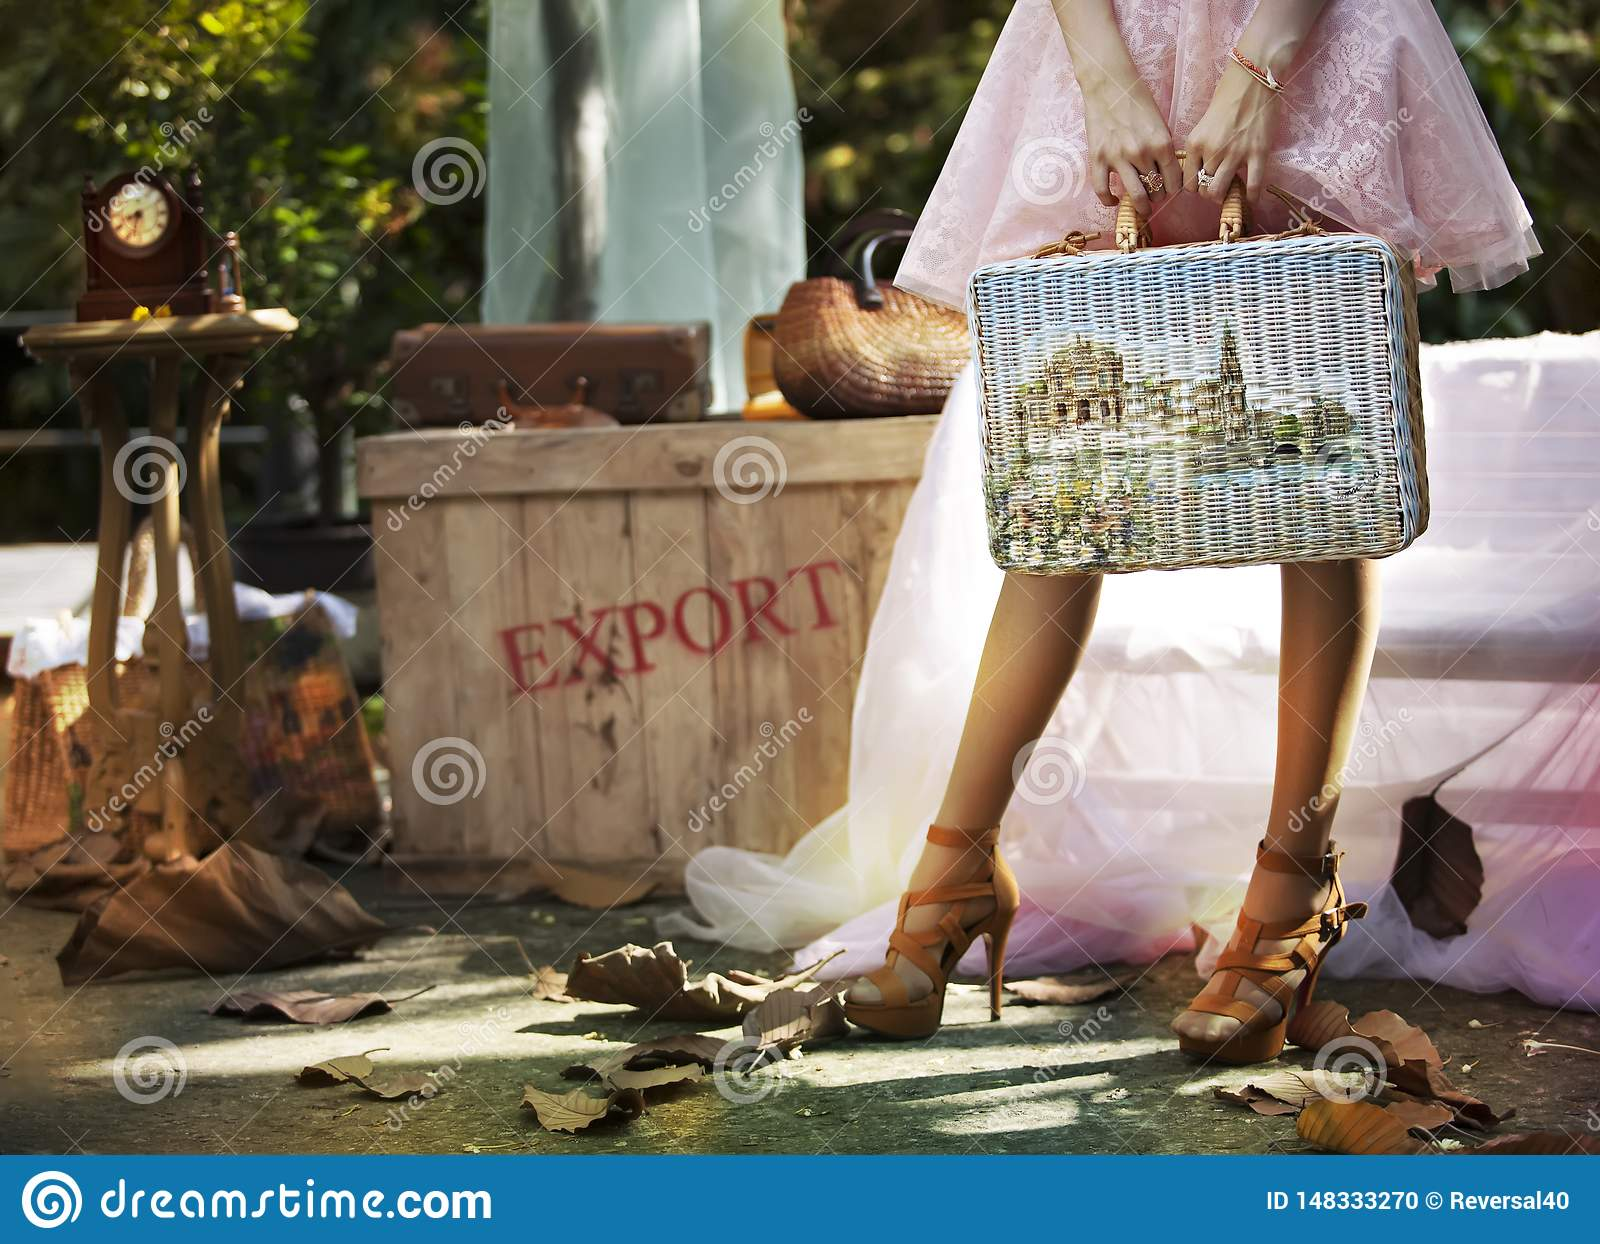 Women carrying luggage to travel